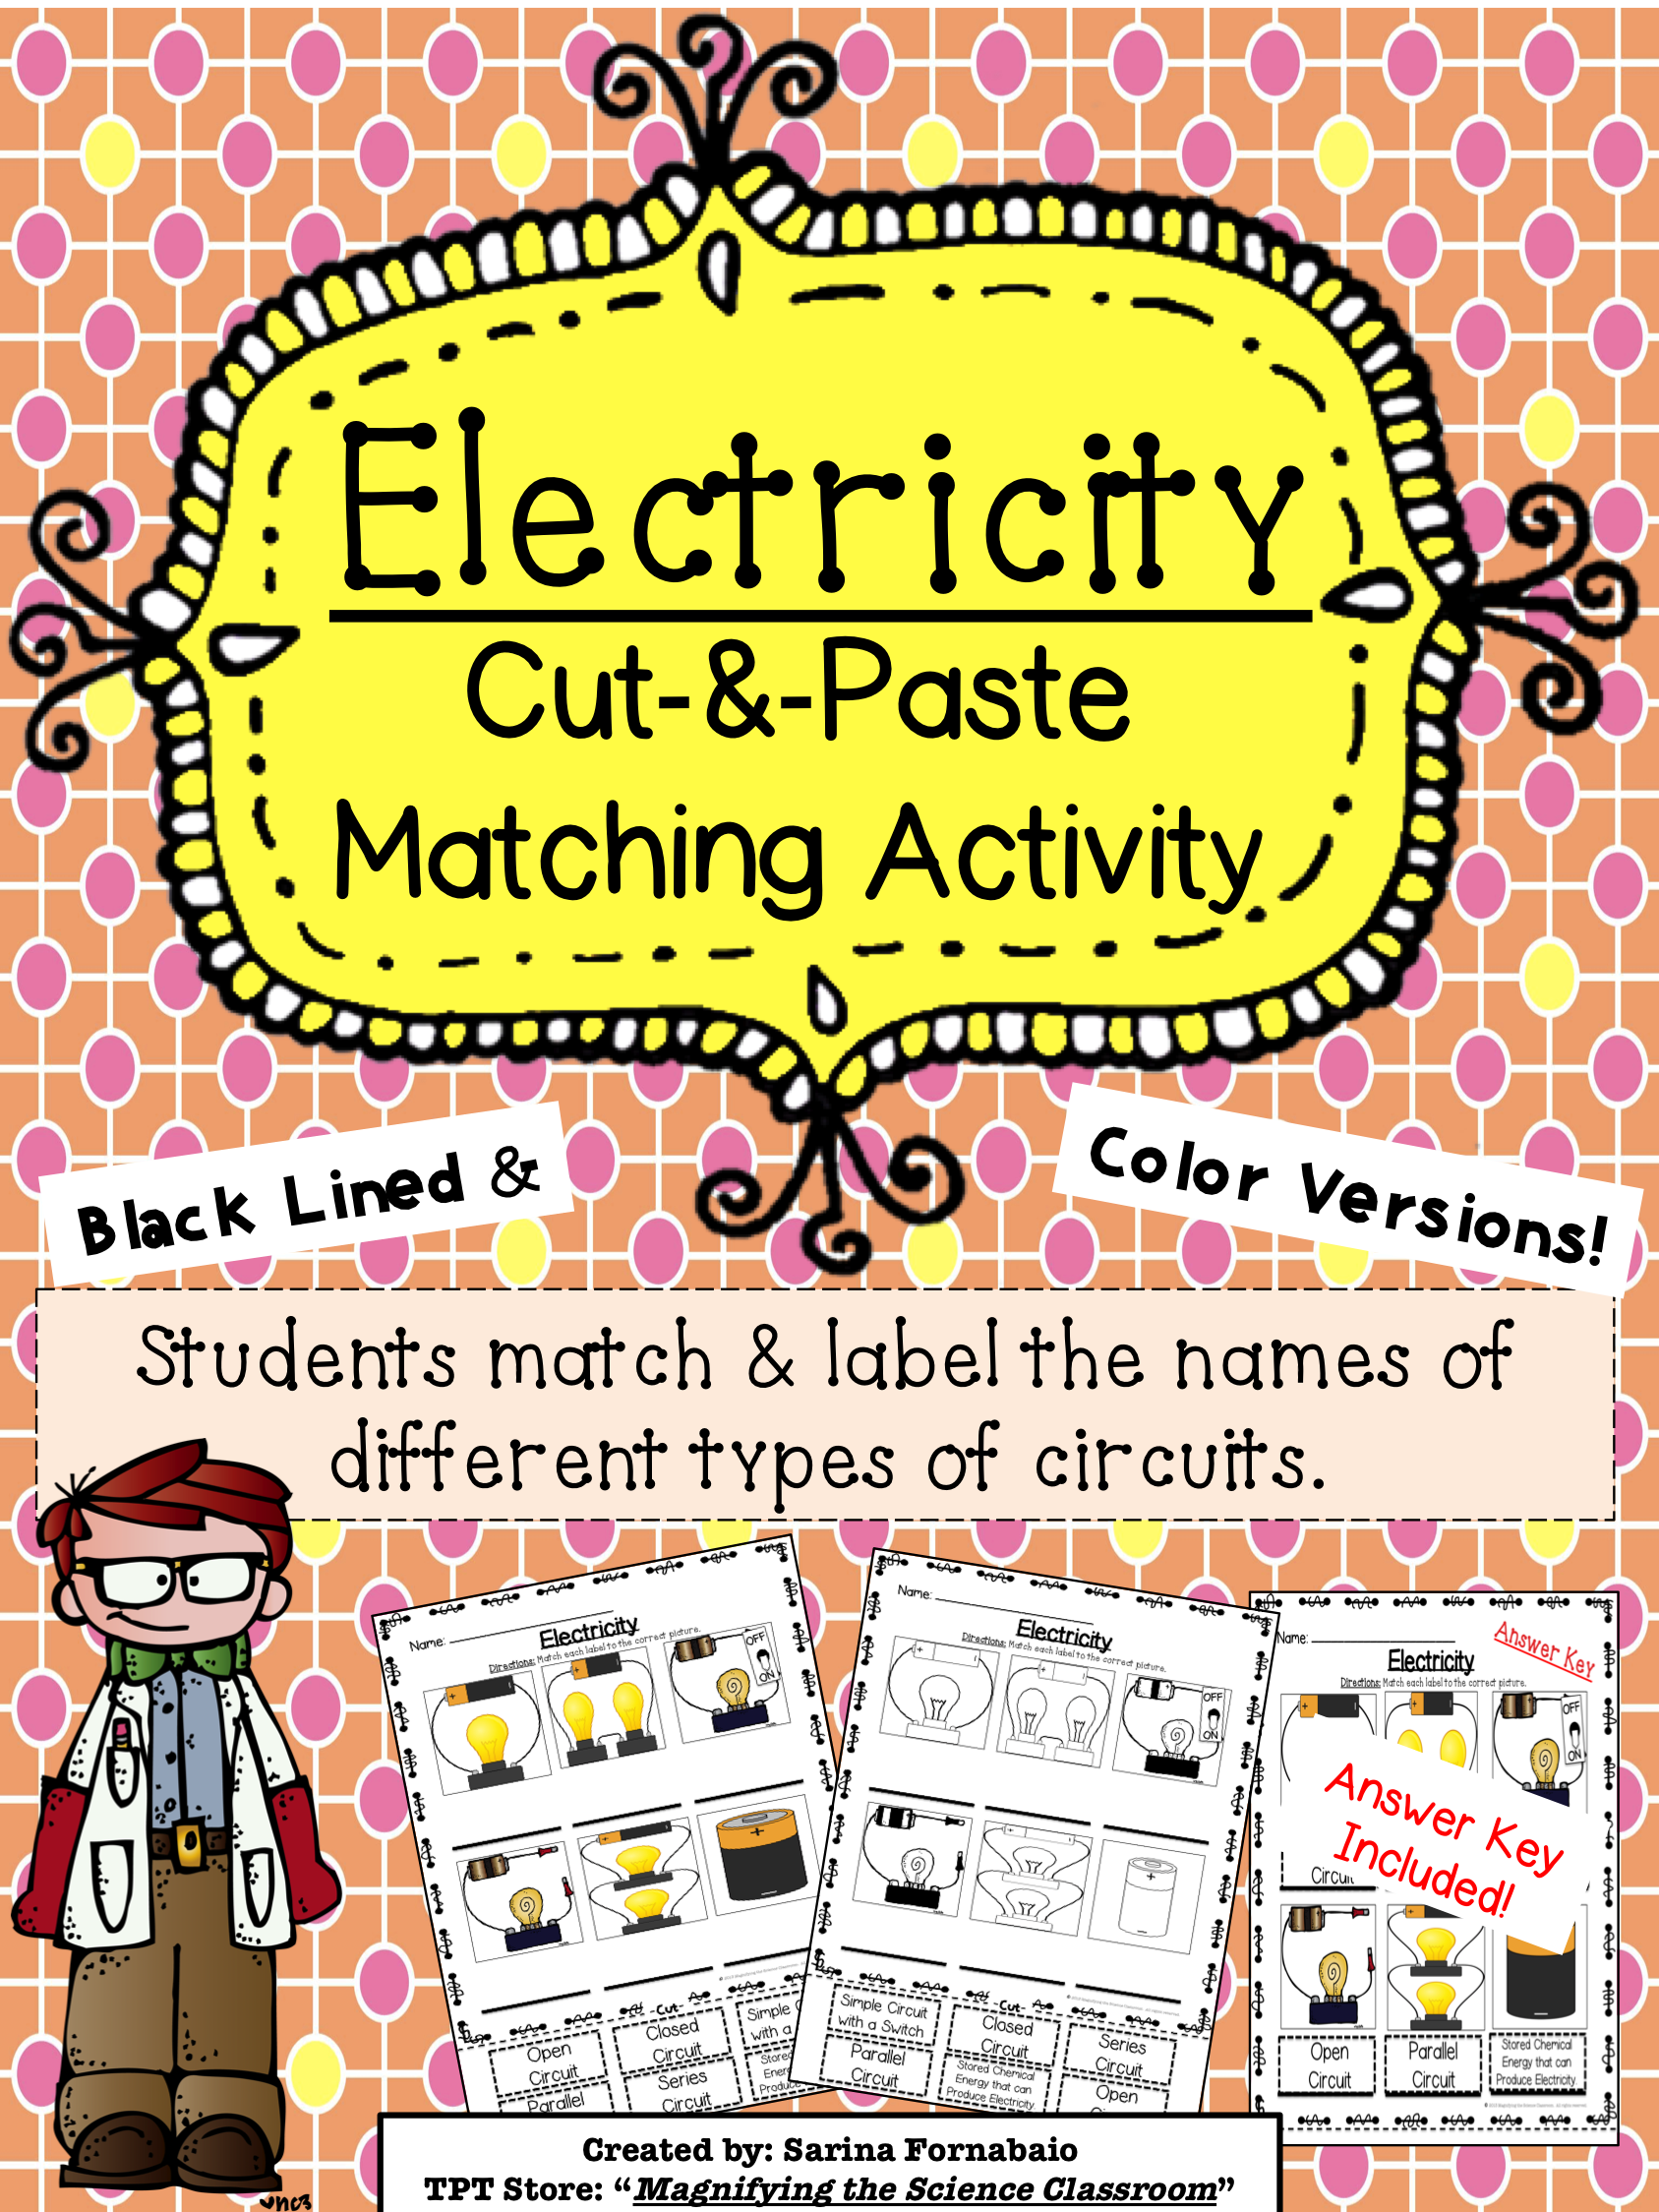 worksheet Types Of Scientists Worksheet electricity types of circuits cut and paste matching activity activity